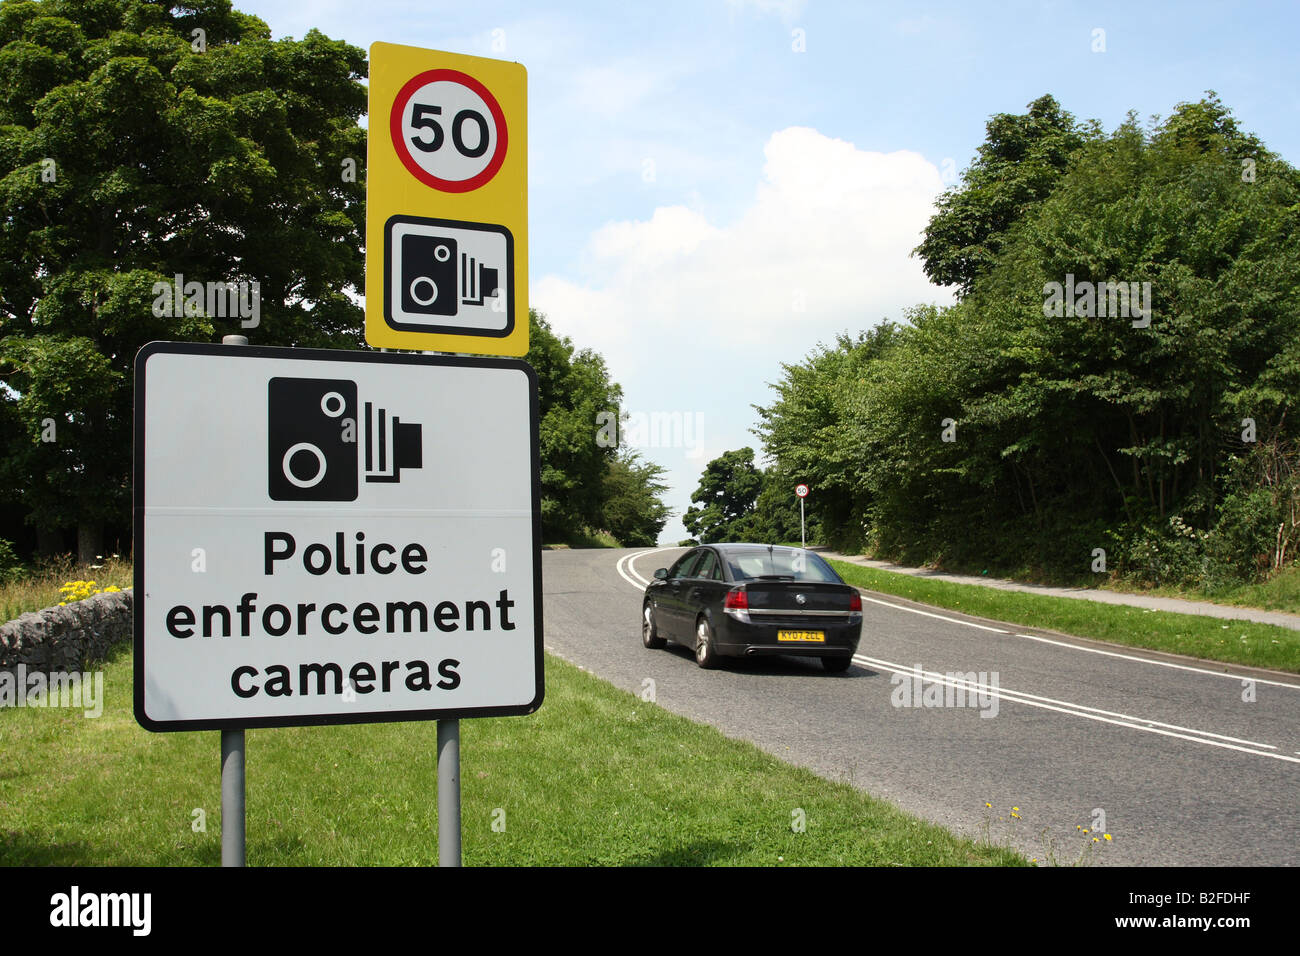 Roadside speed restriction sign on the A6 in Derbyshire, England, U.K. - Stock Image